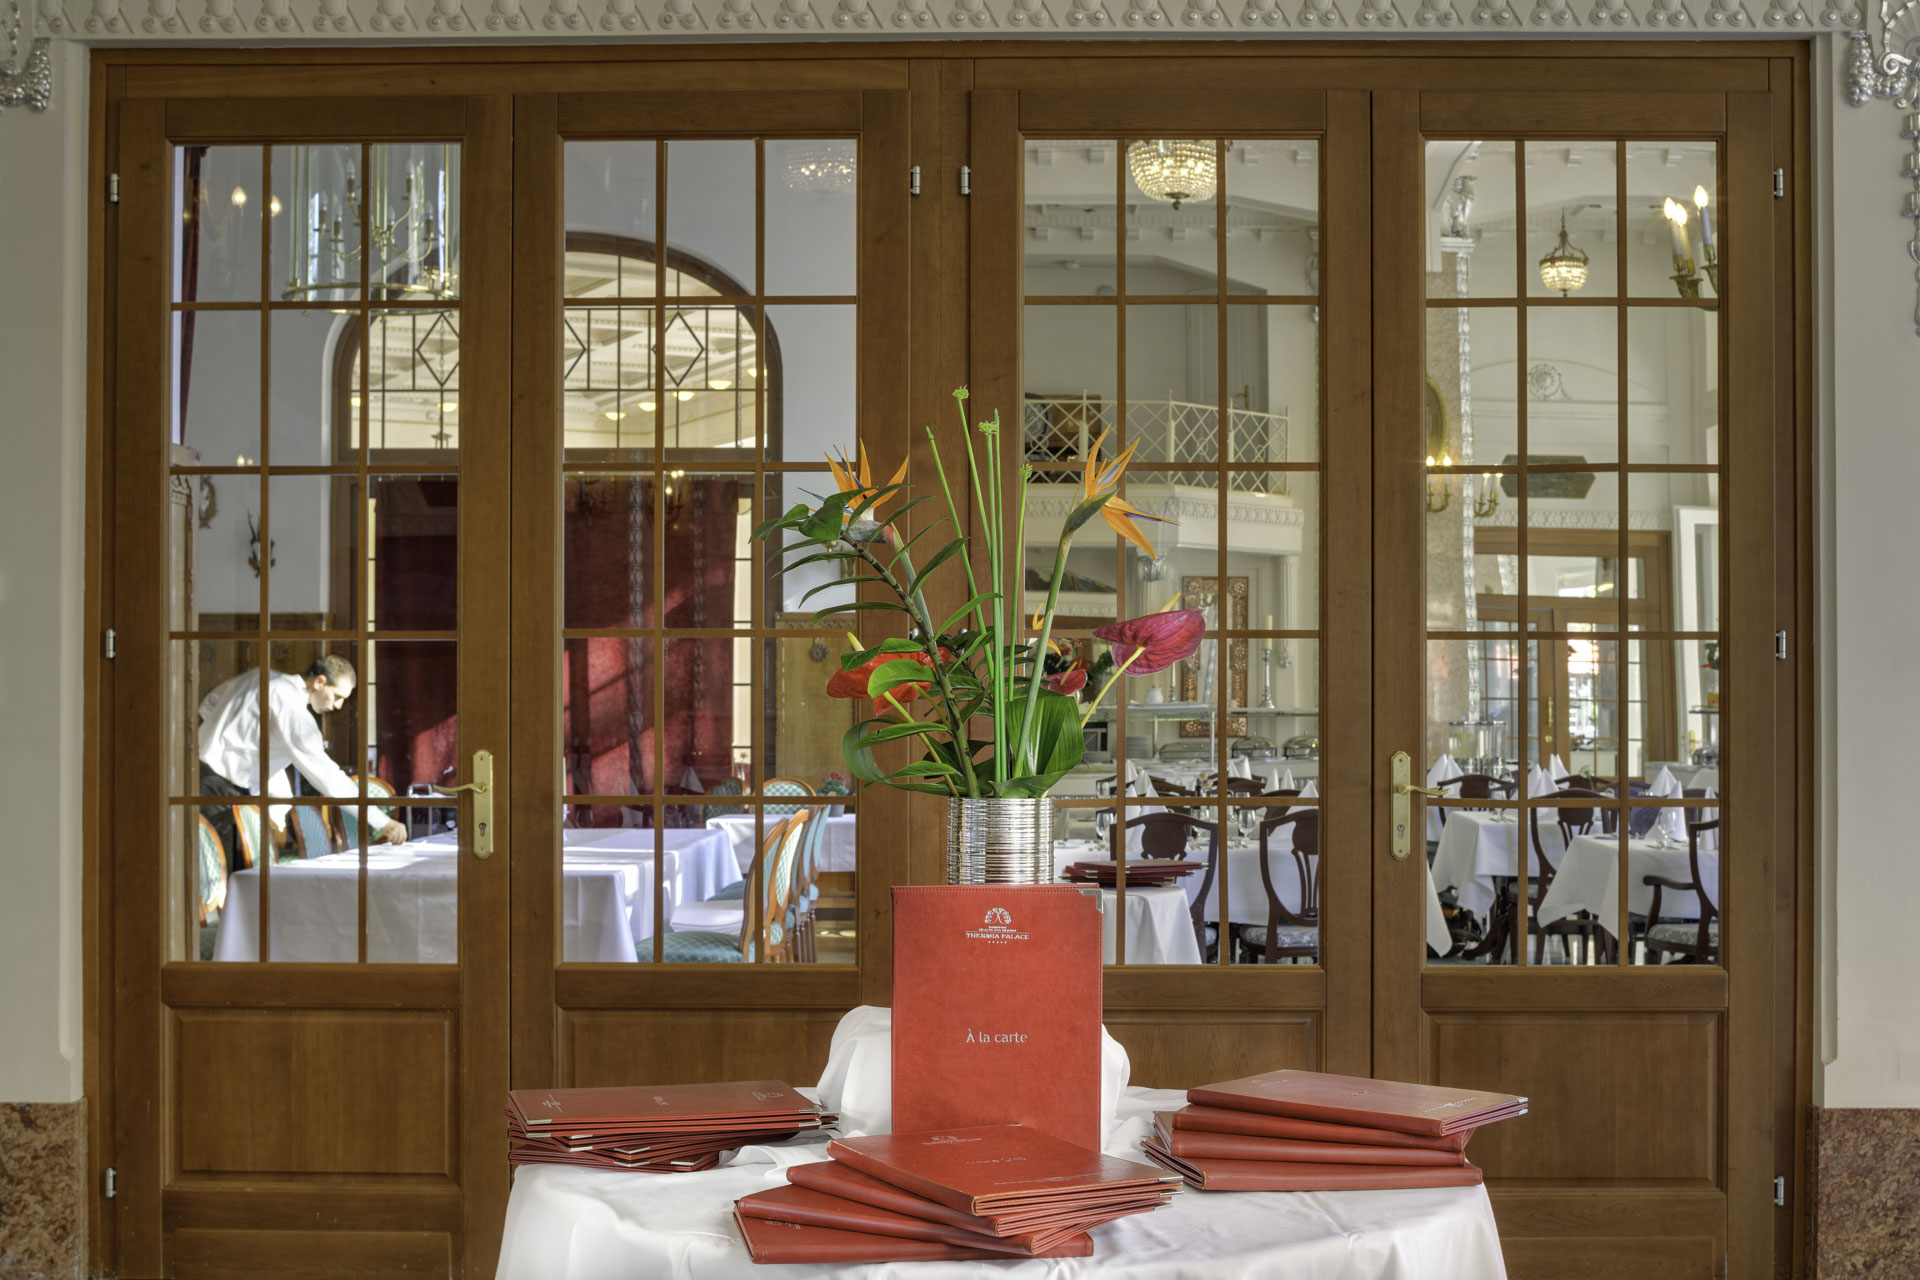 Restaurant at Hotel Thermia Palace Spa Piestany